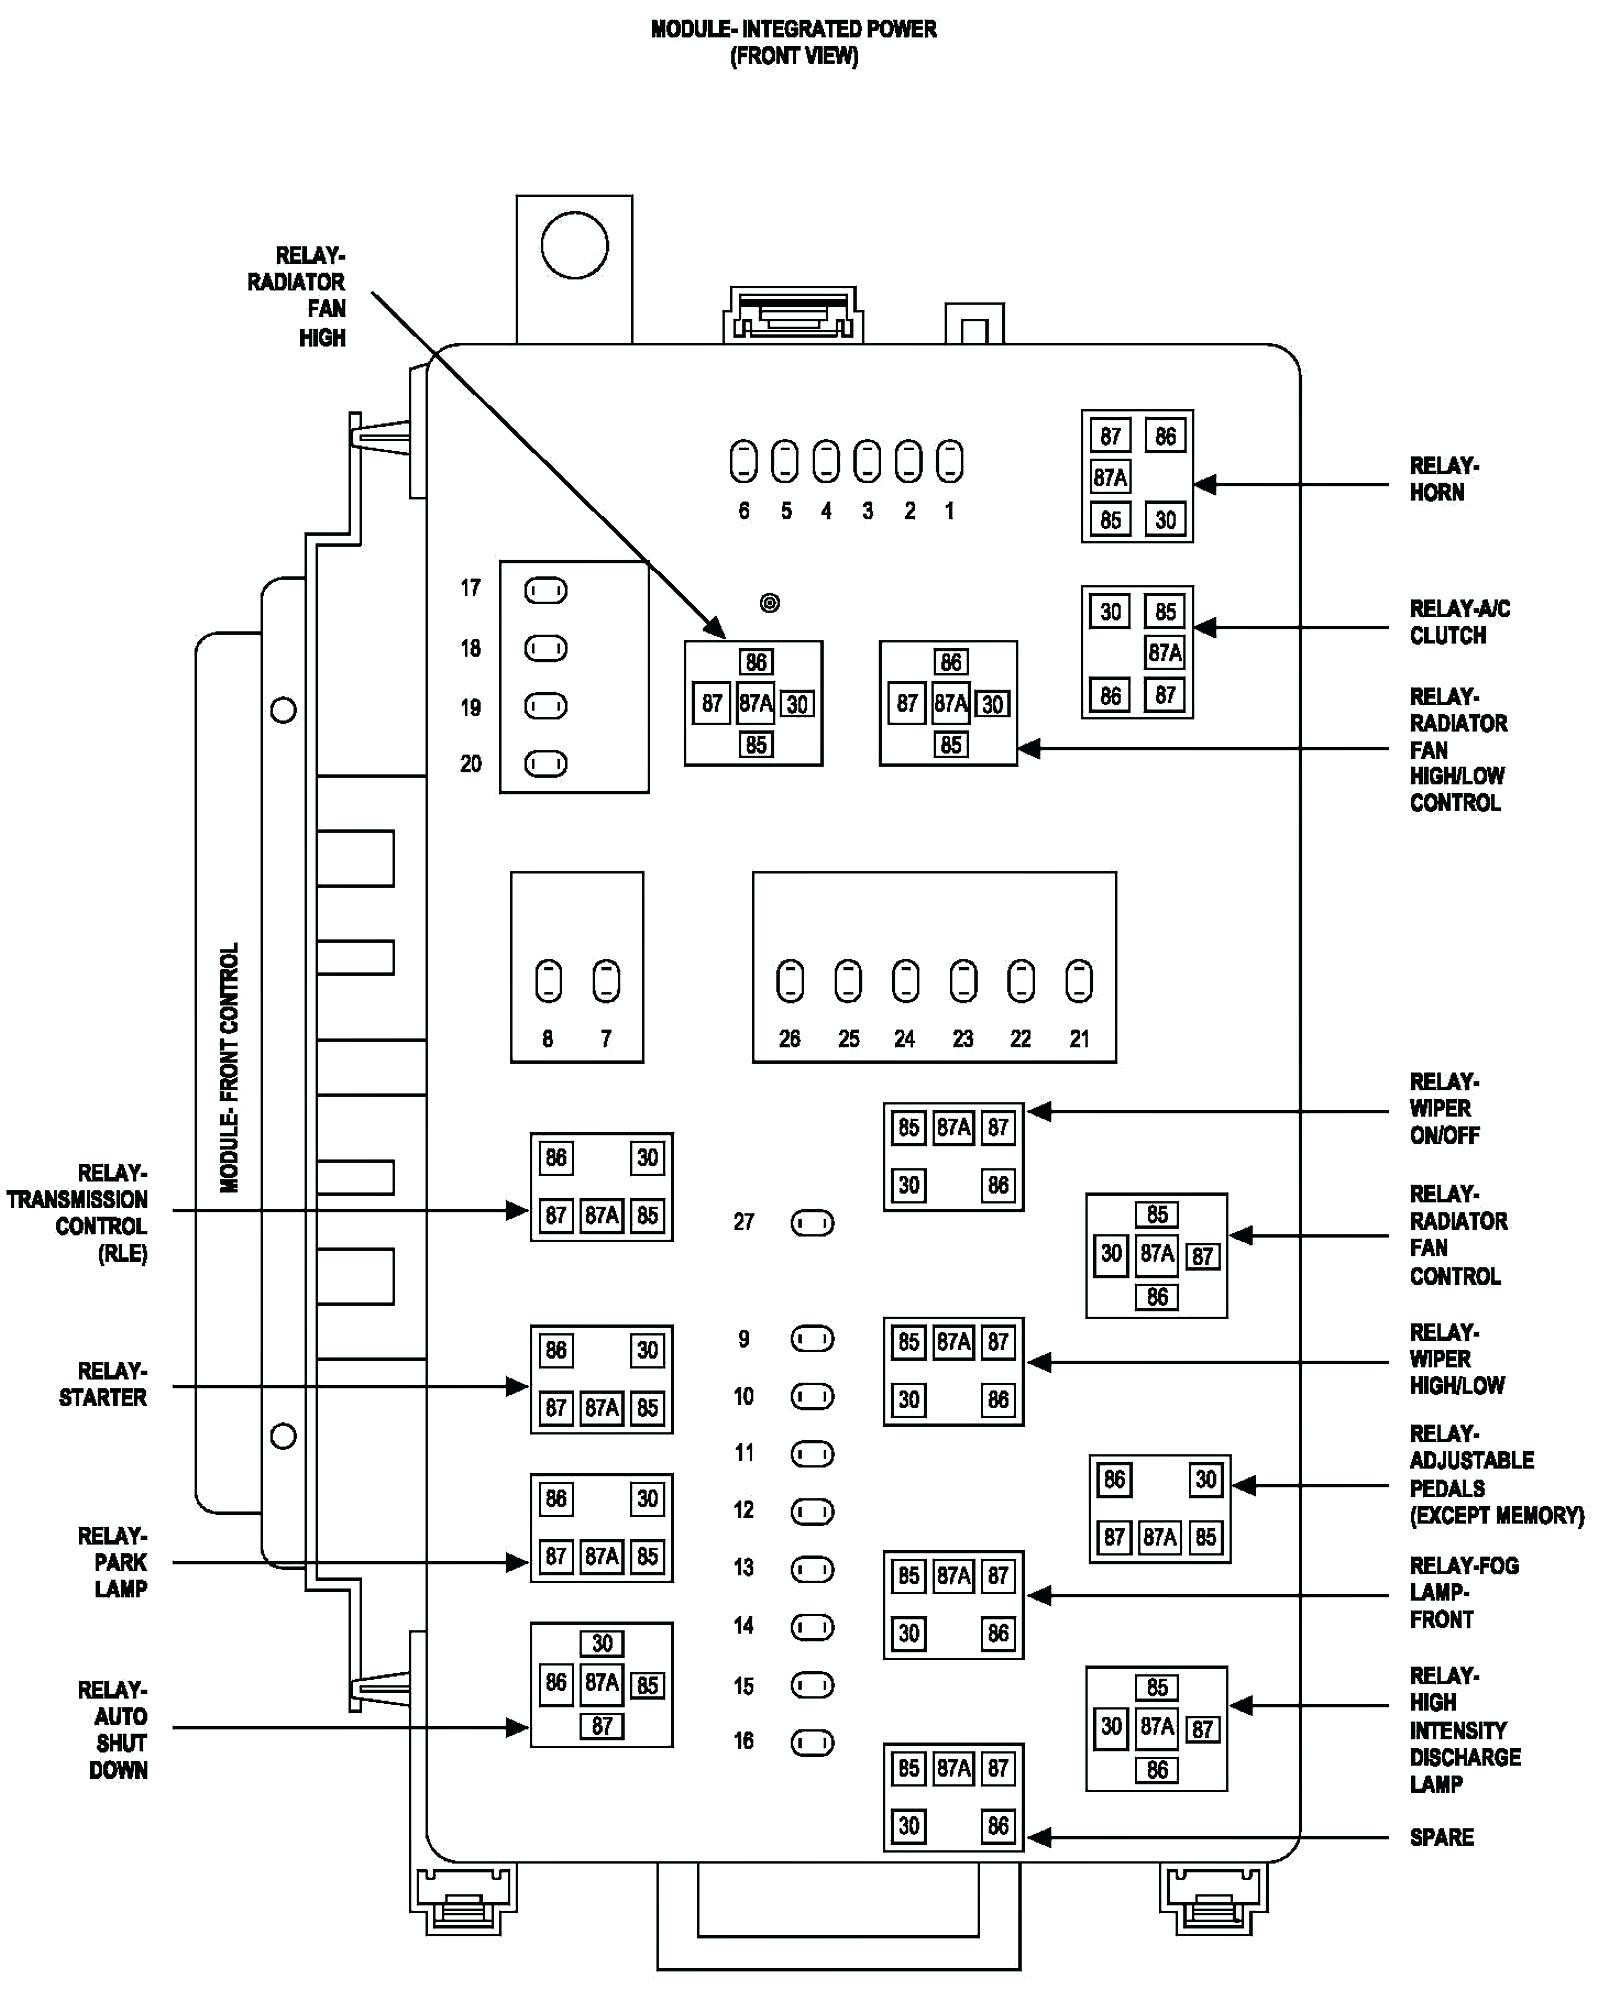 hight resolution of 1999 chrysler 300m fuse box diagram wiring diagram todays 2000 chrysler cirrus fuse  [ 1599 x 2001 Pixel ]